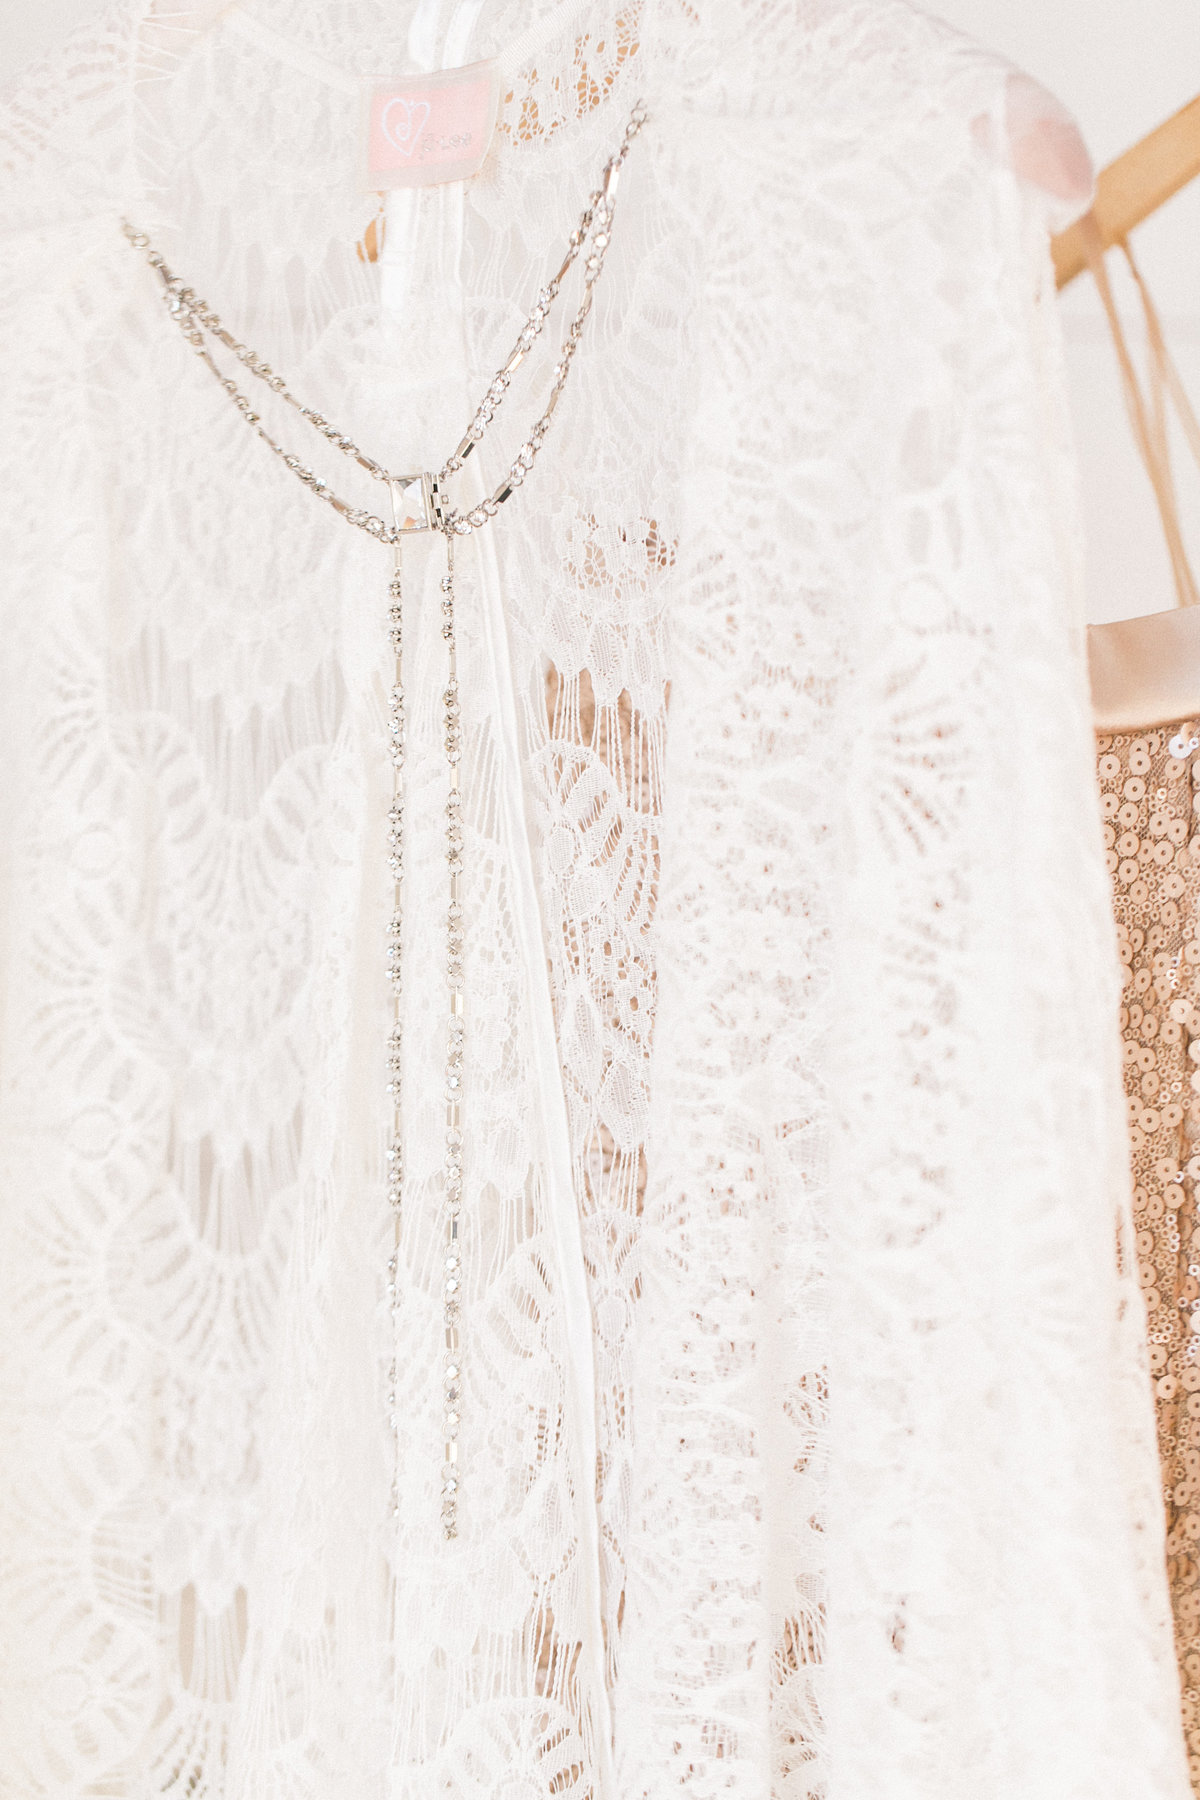 Lace Cape Detail Julee Collection